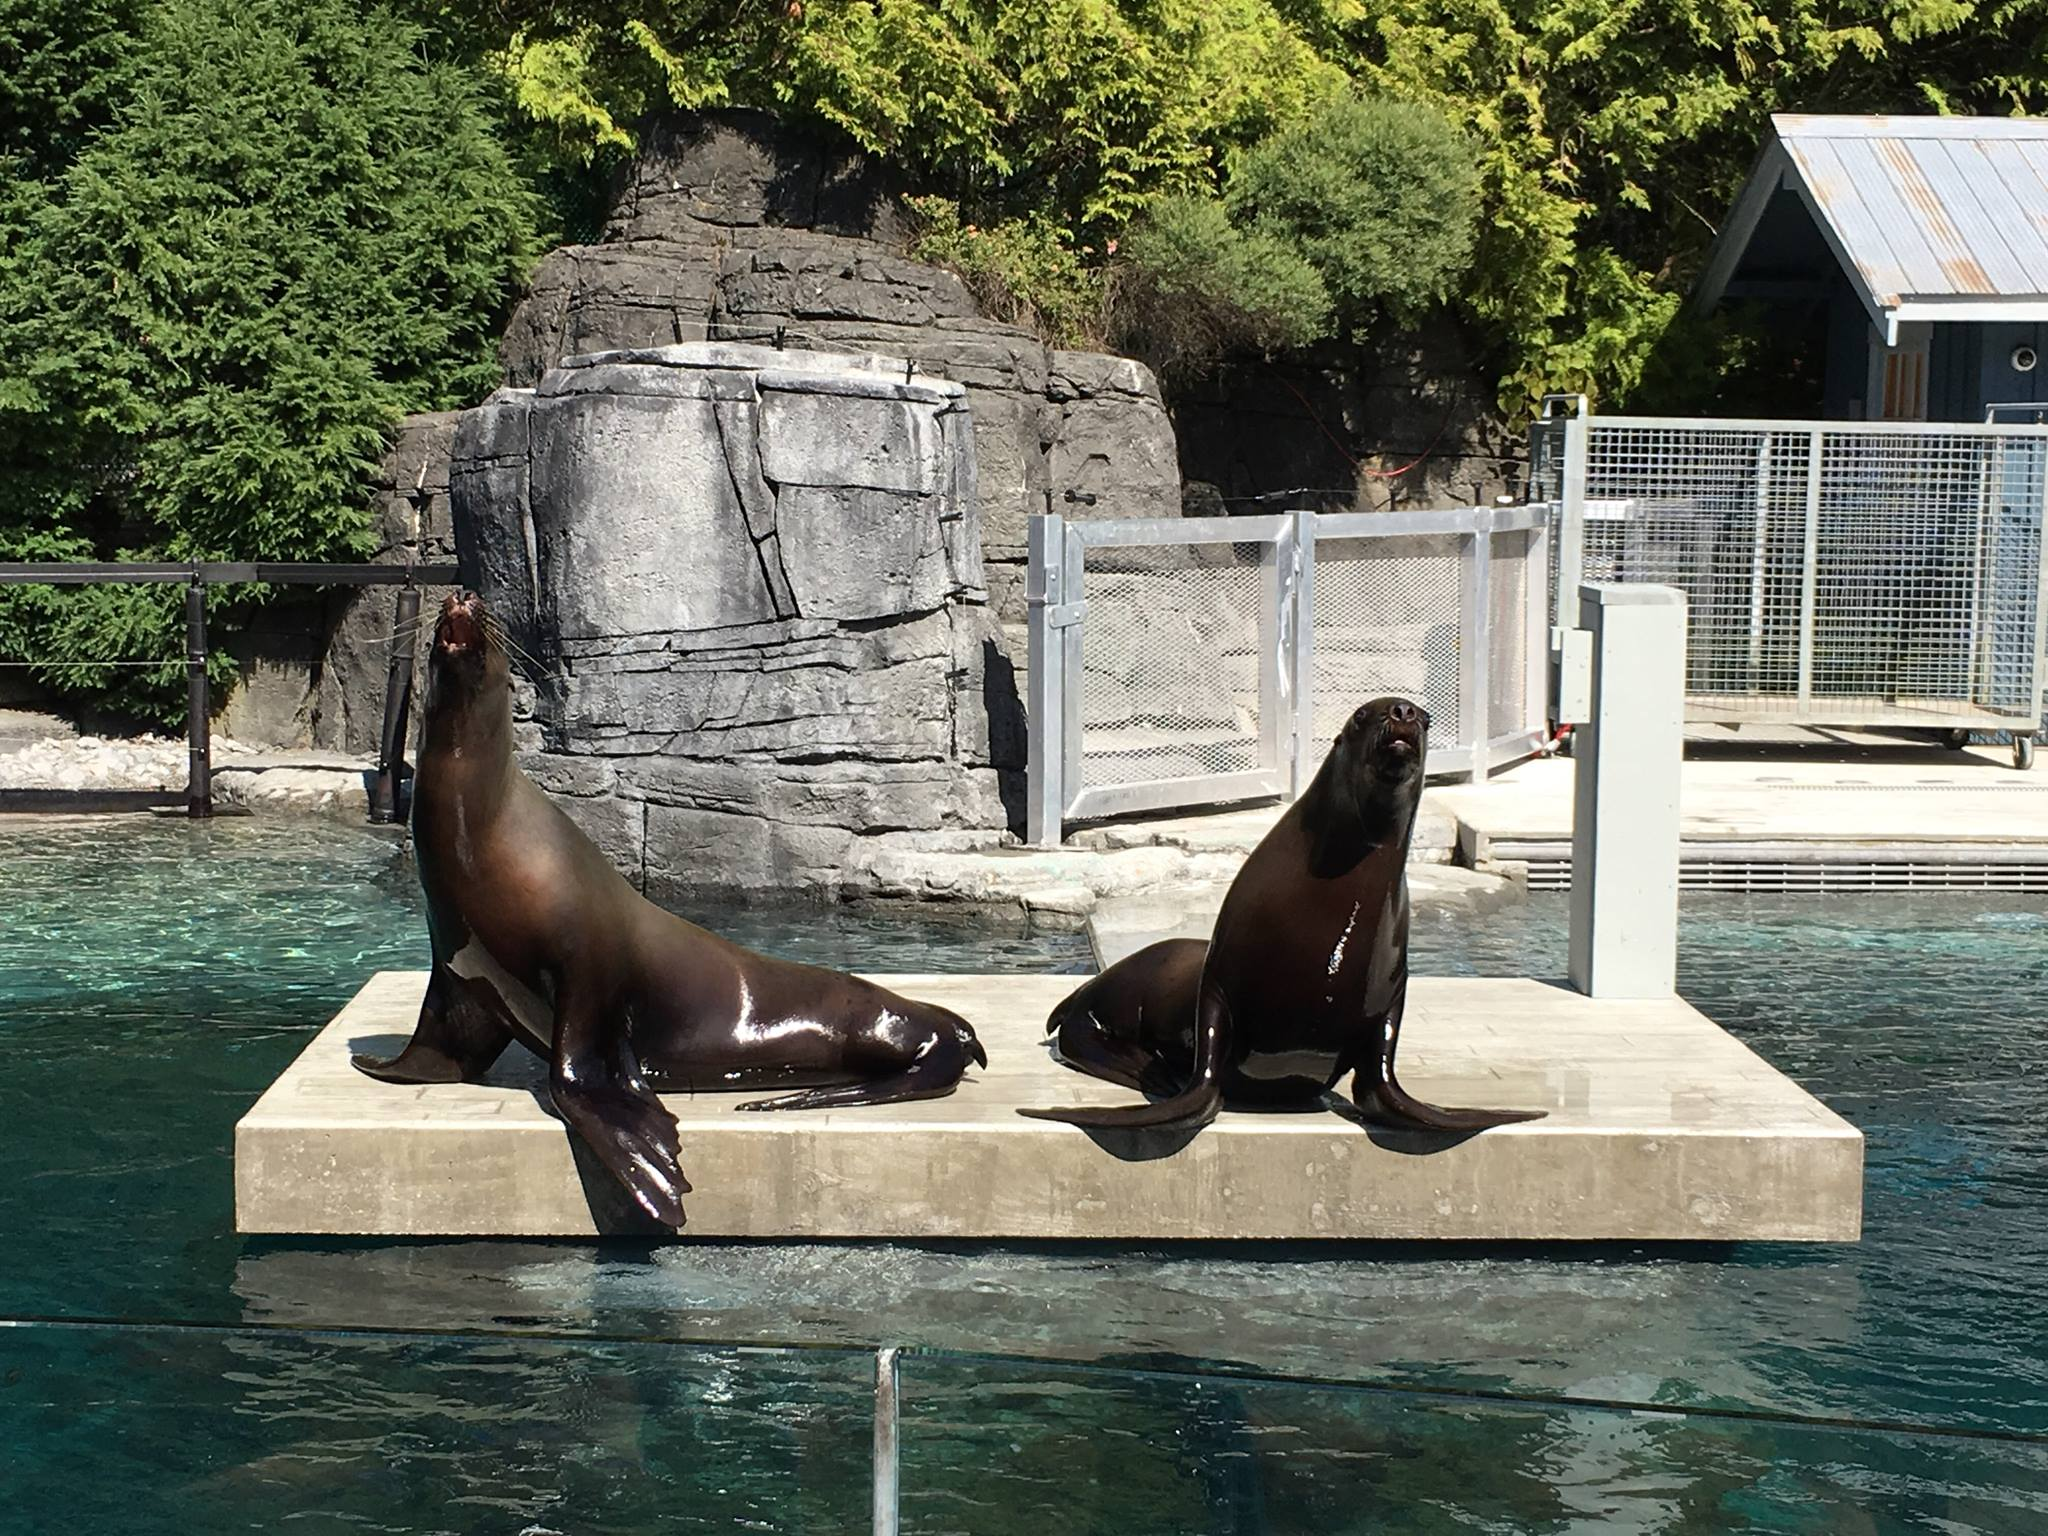 There's a brand new sea lion exhibit at the Vancouver Aquarium